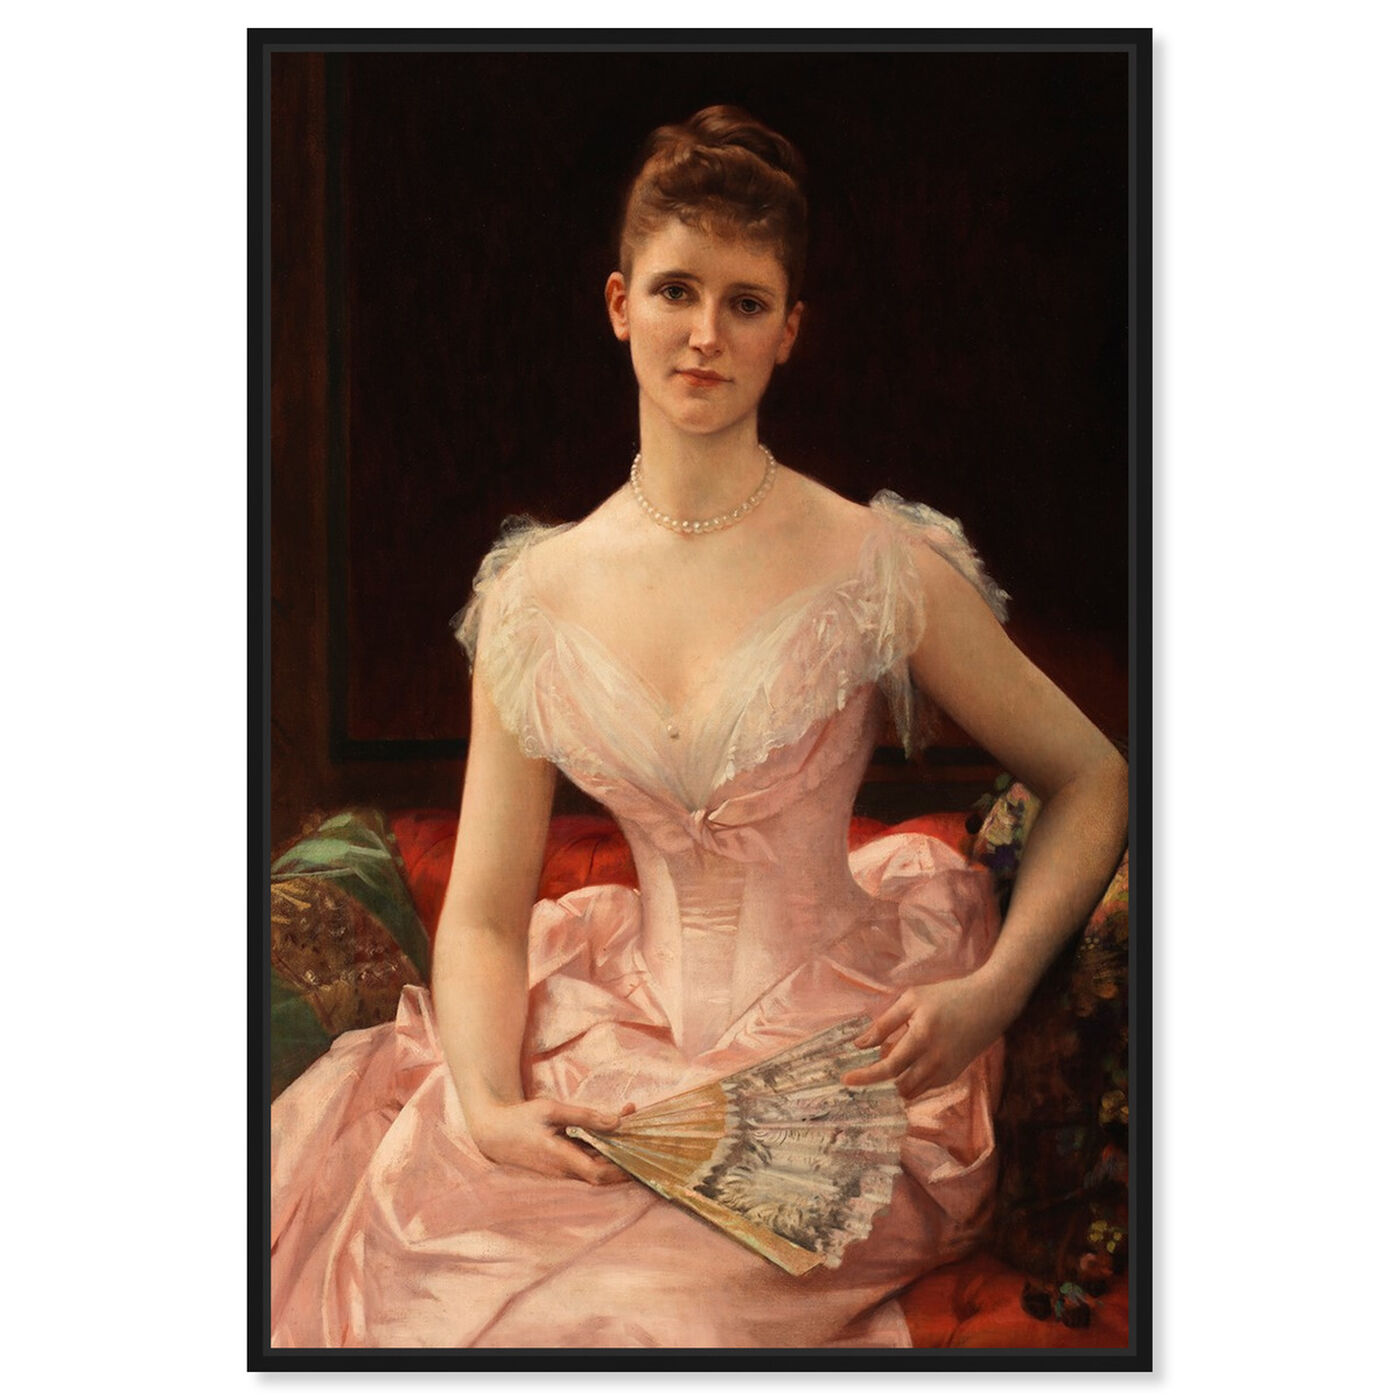 Front view of Cabanel - Olivia Peyton 1887 featuring classic and figurative and french décor art.